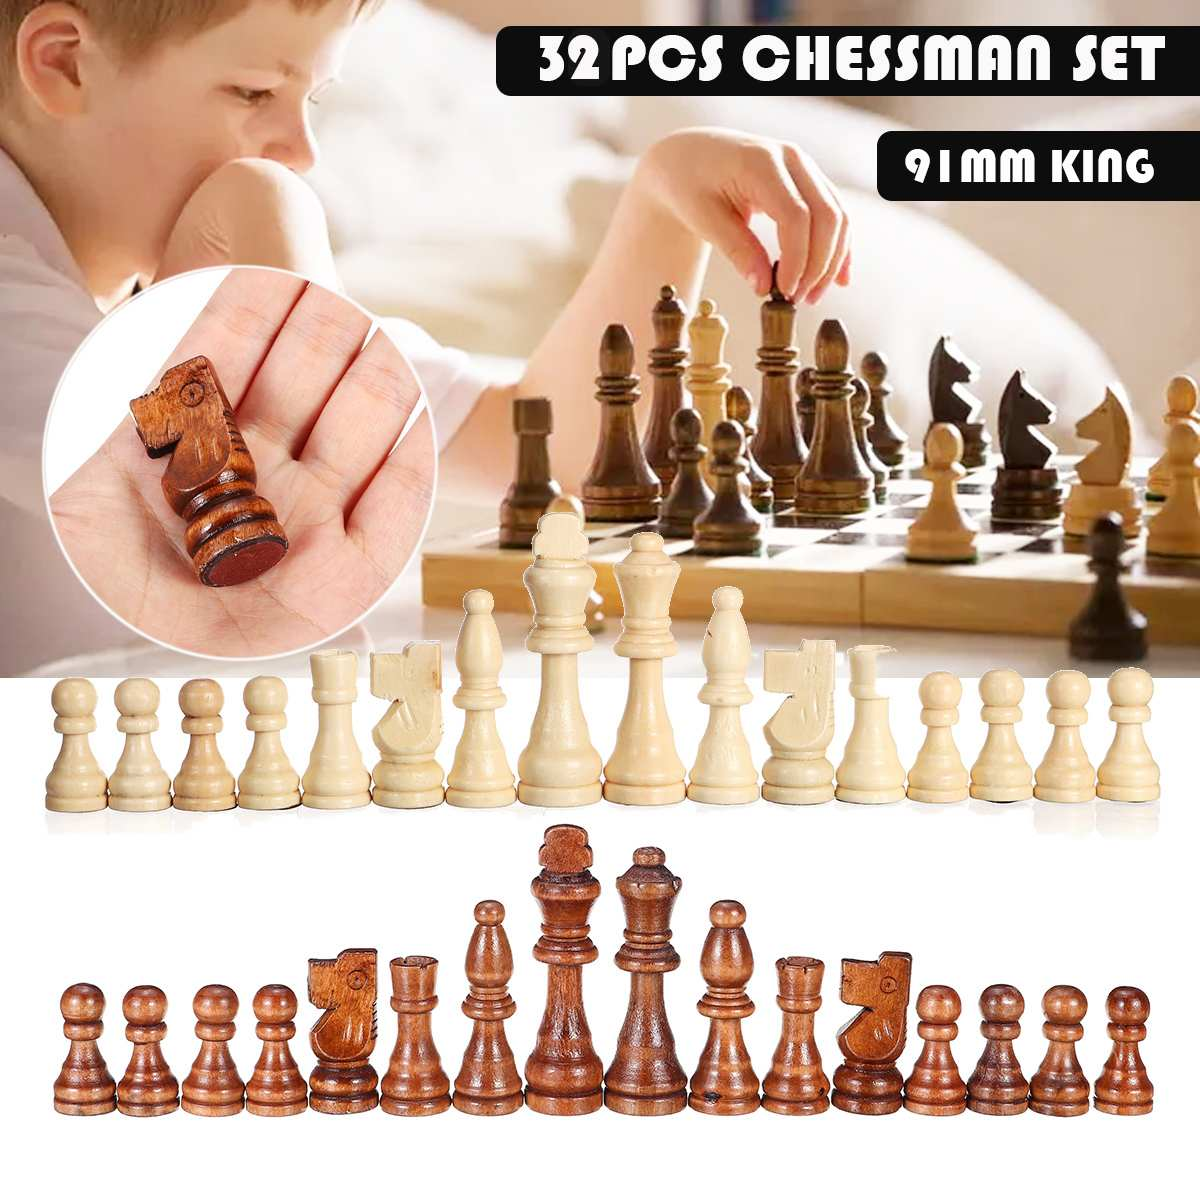 32 Pieces Wooden Chess Pieces King Height 91mm Set Chess Gam…